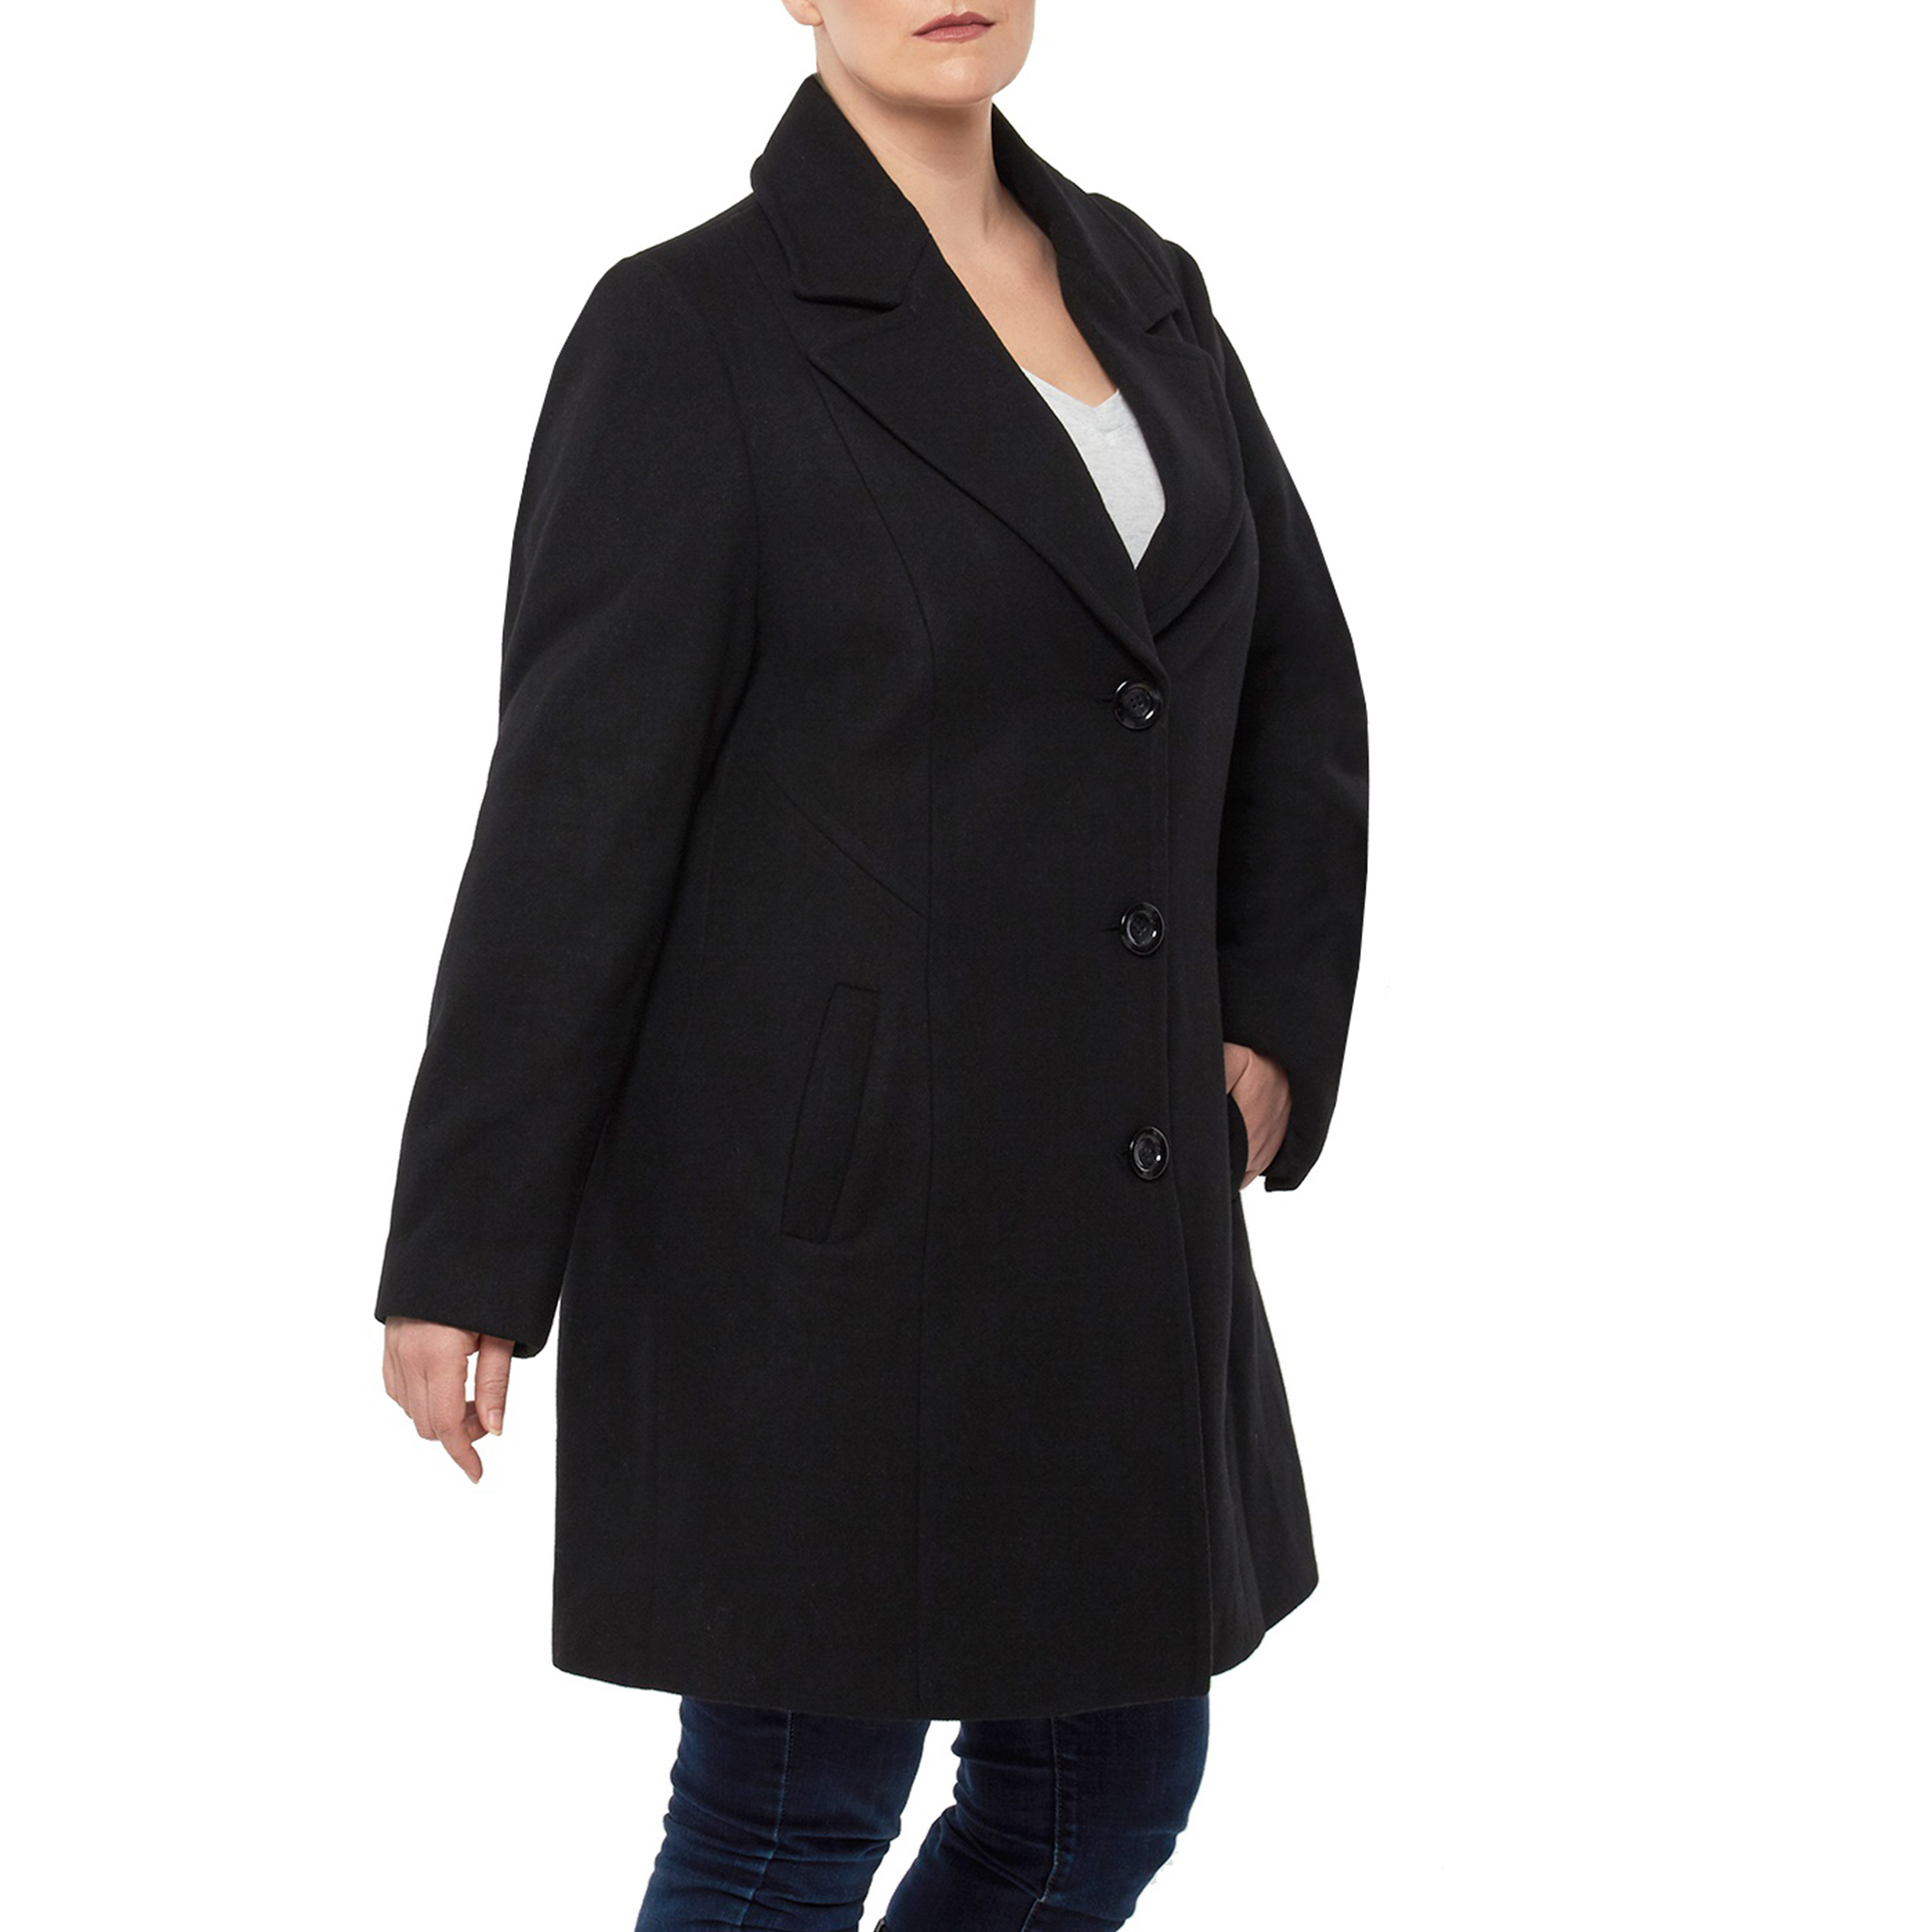 5edcf735f16 Alpine Swiss Womens Plus Size Wool Overcoat Walking Coat Blazer Pea ...